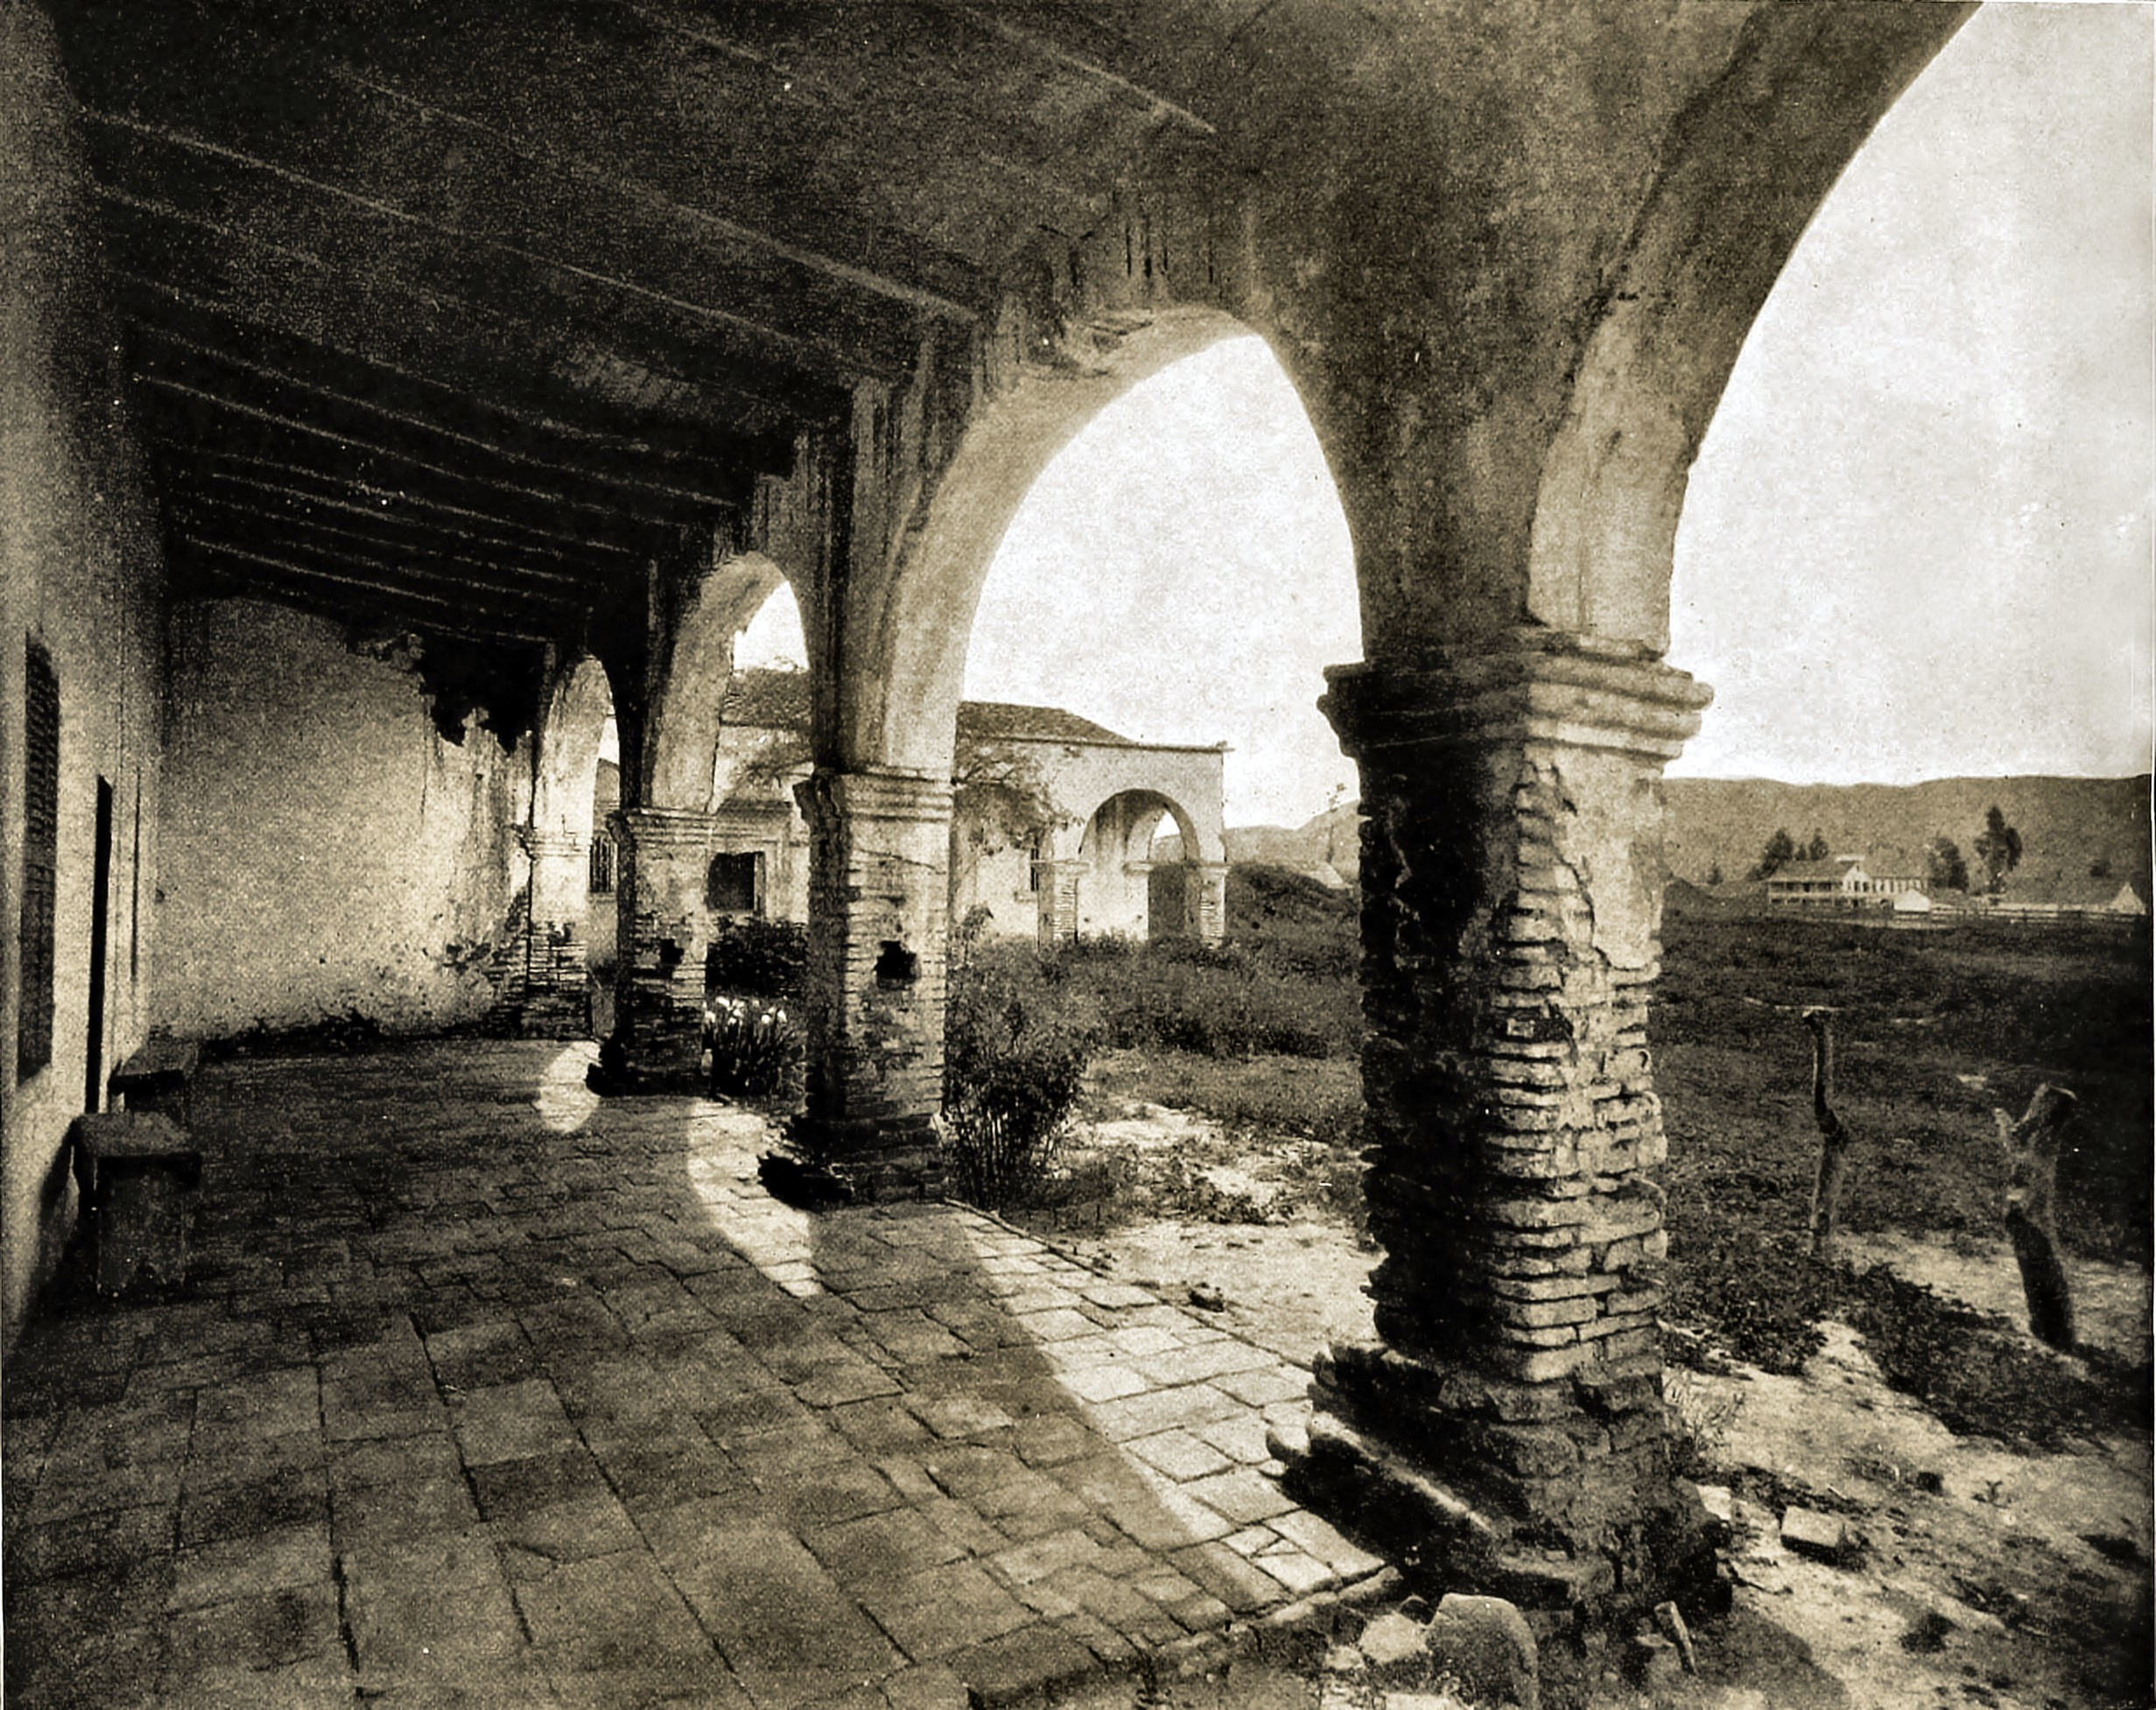 San Juan Capistrano Mission, California, USA about 1892